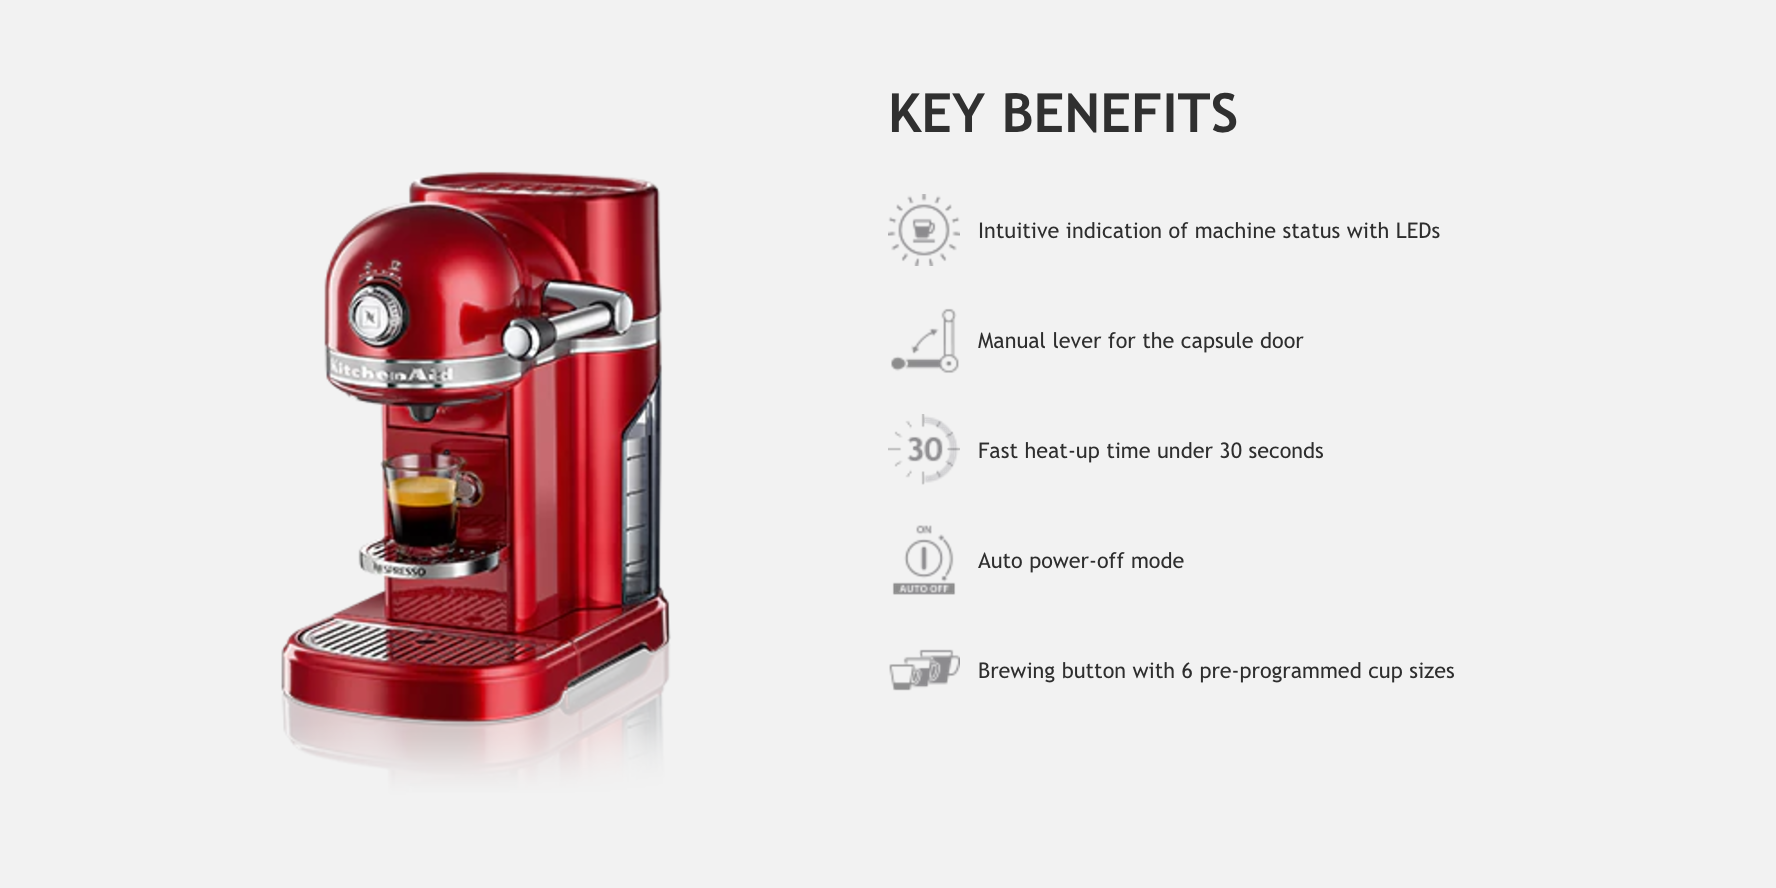 Kitchenaid Nespresso Artisan Review